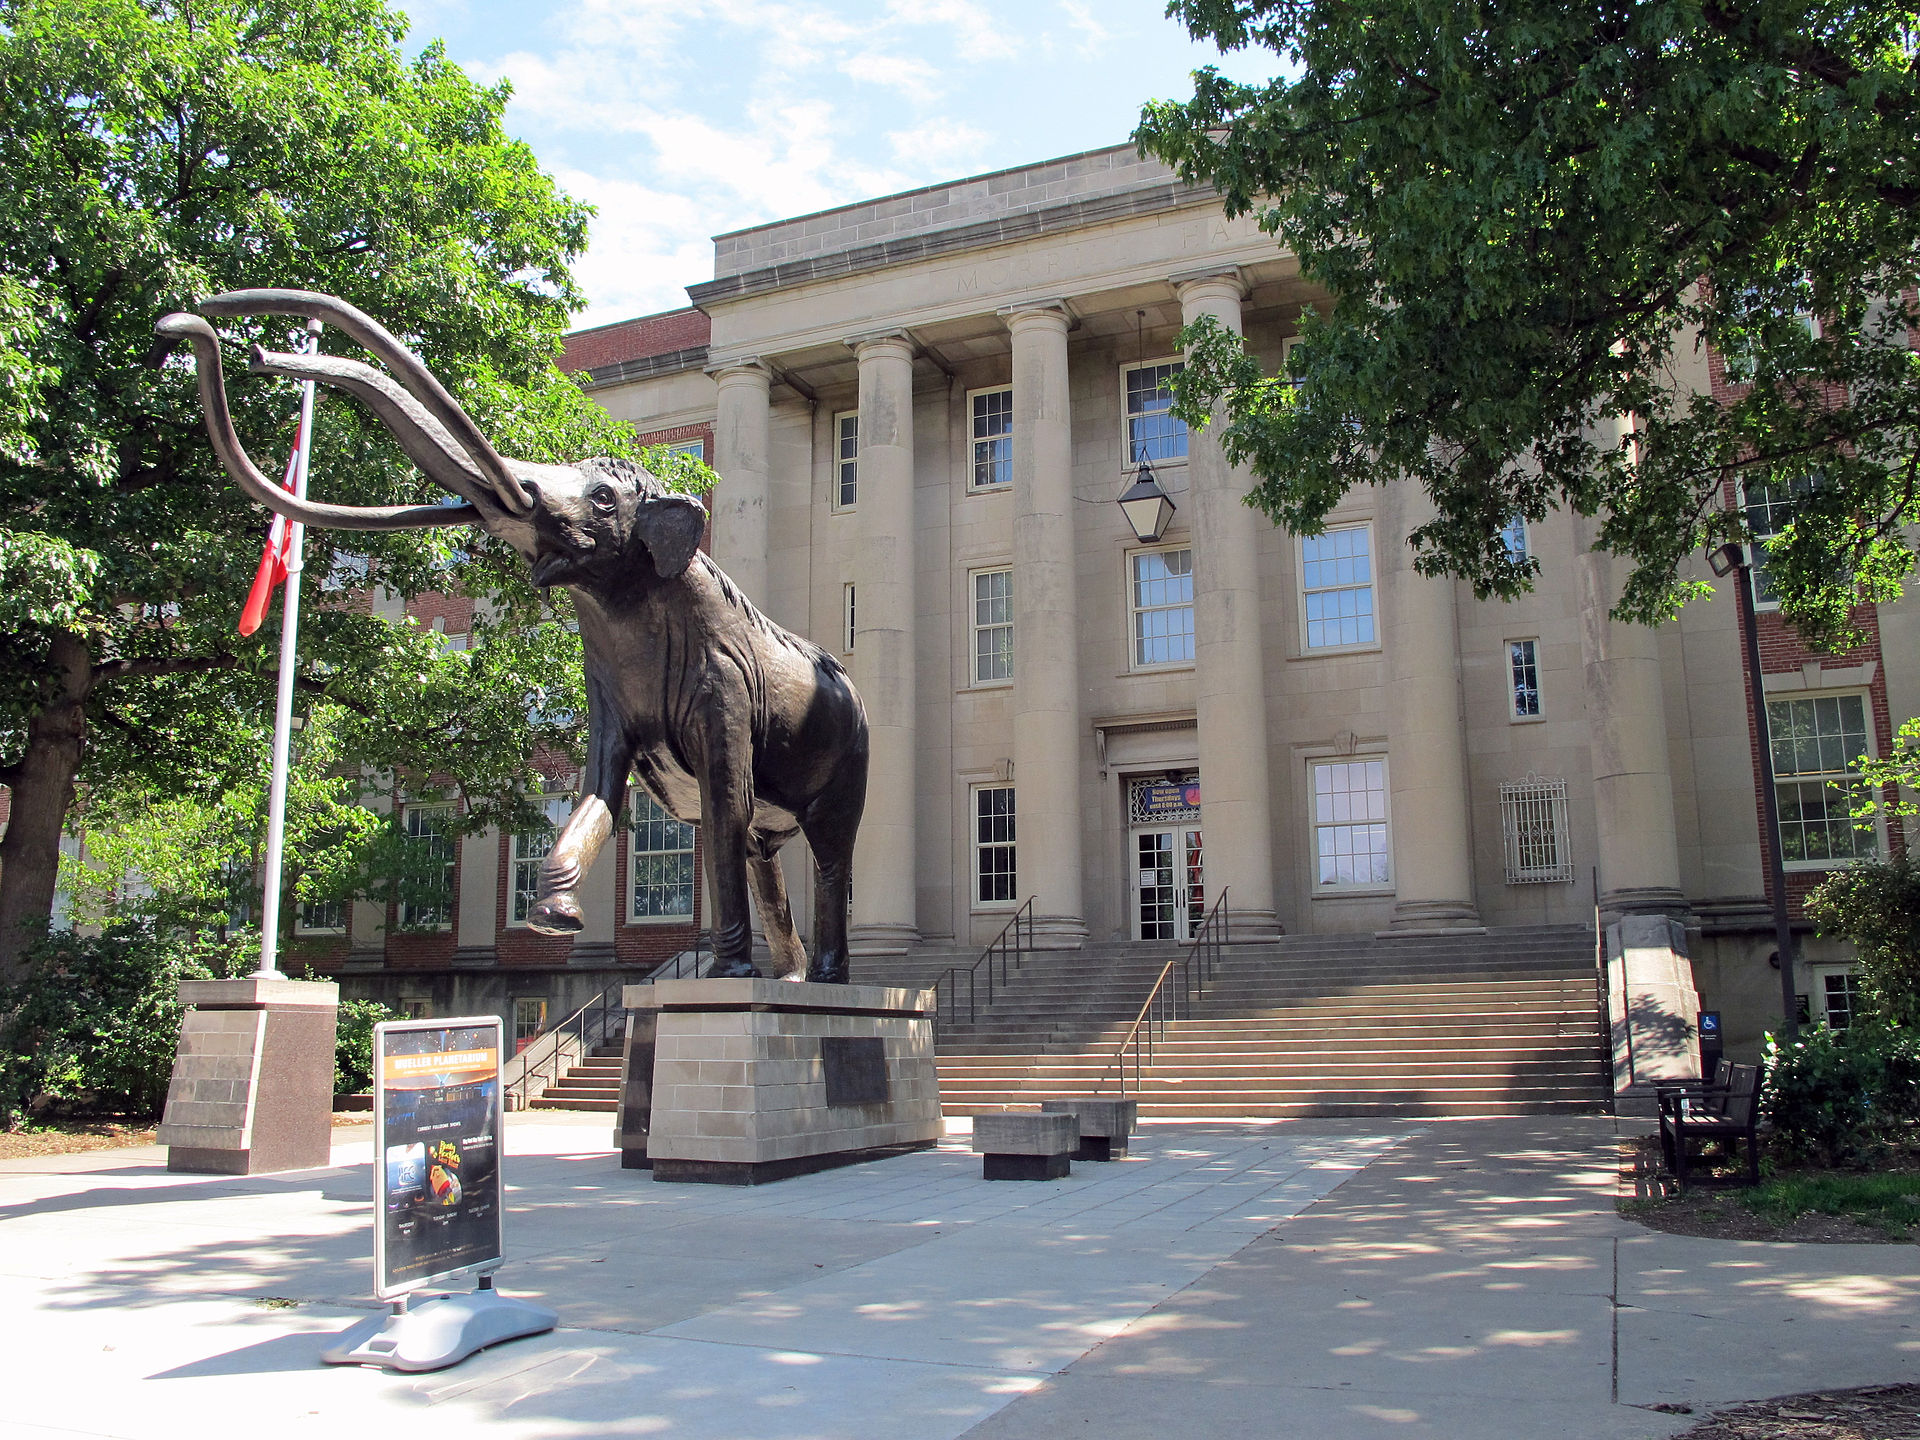 The University of Nebraska State Museum was established in 1871